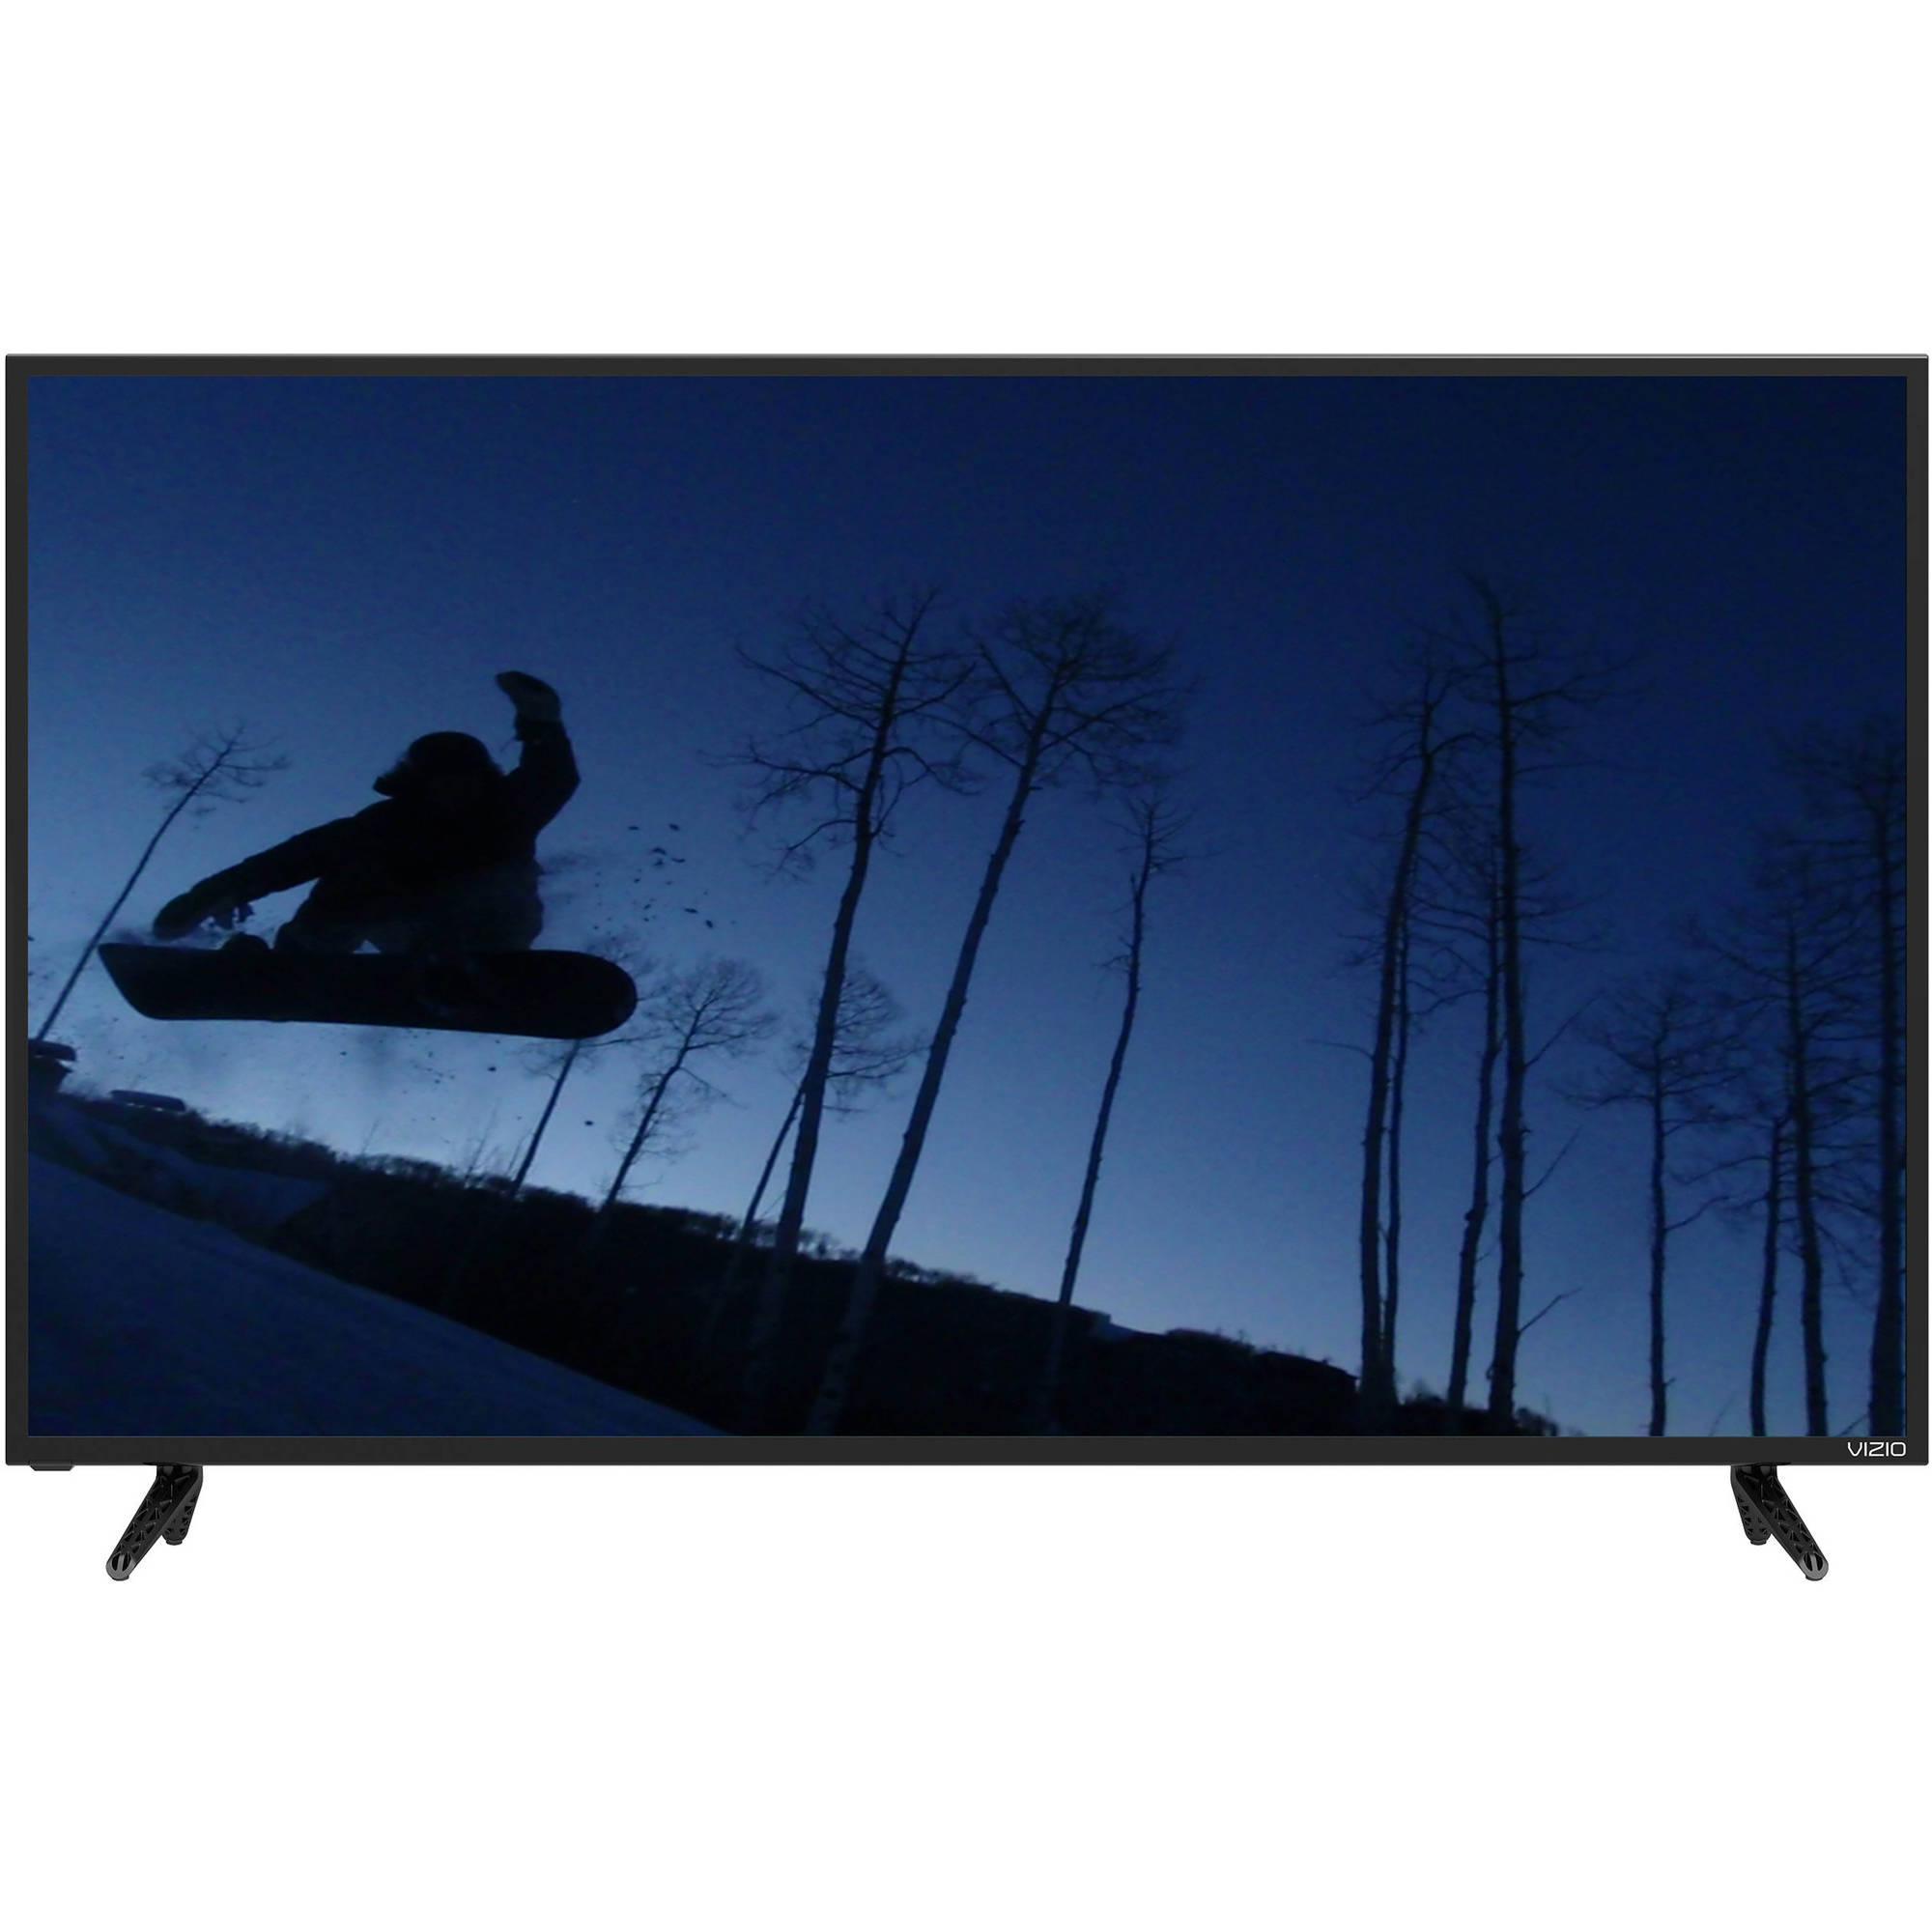 "Refurbished VIZIO 32"" Class E-Series - Full HD, Smart, LED TV - 1080p, 120Hz (E32-D1)"